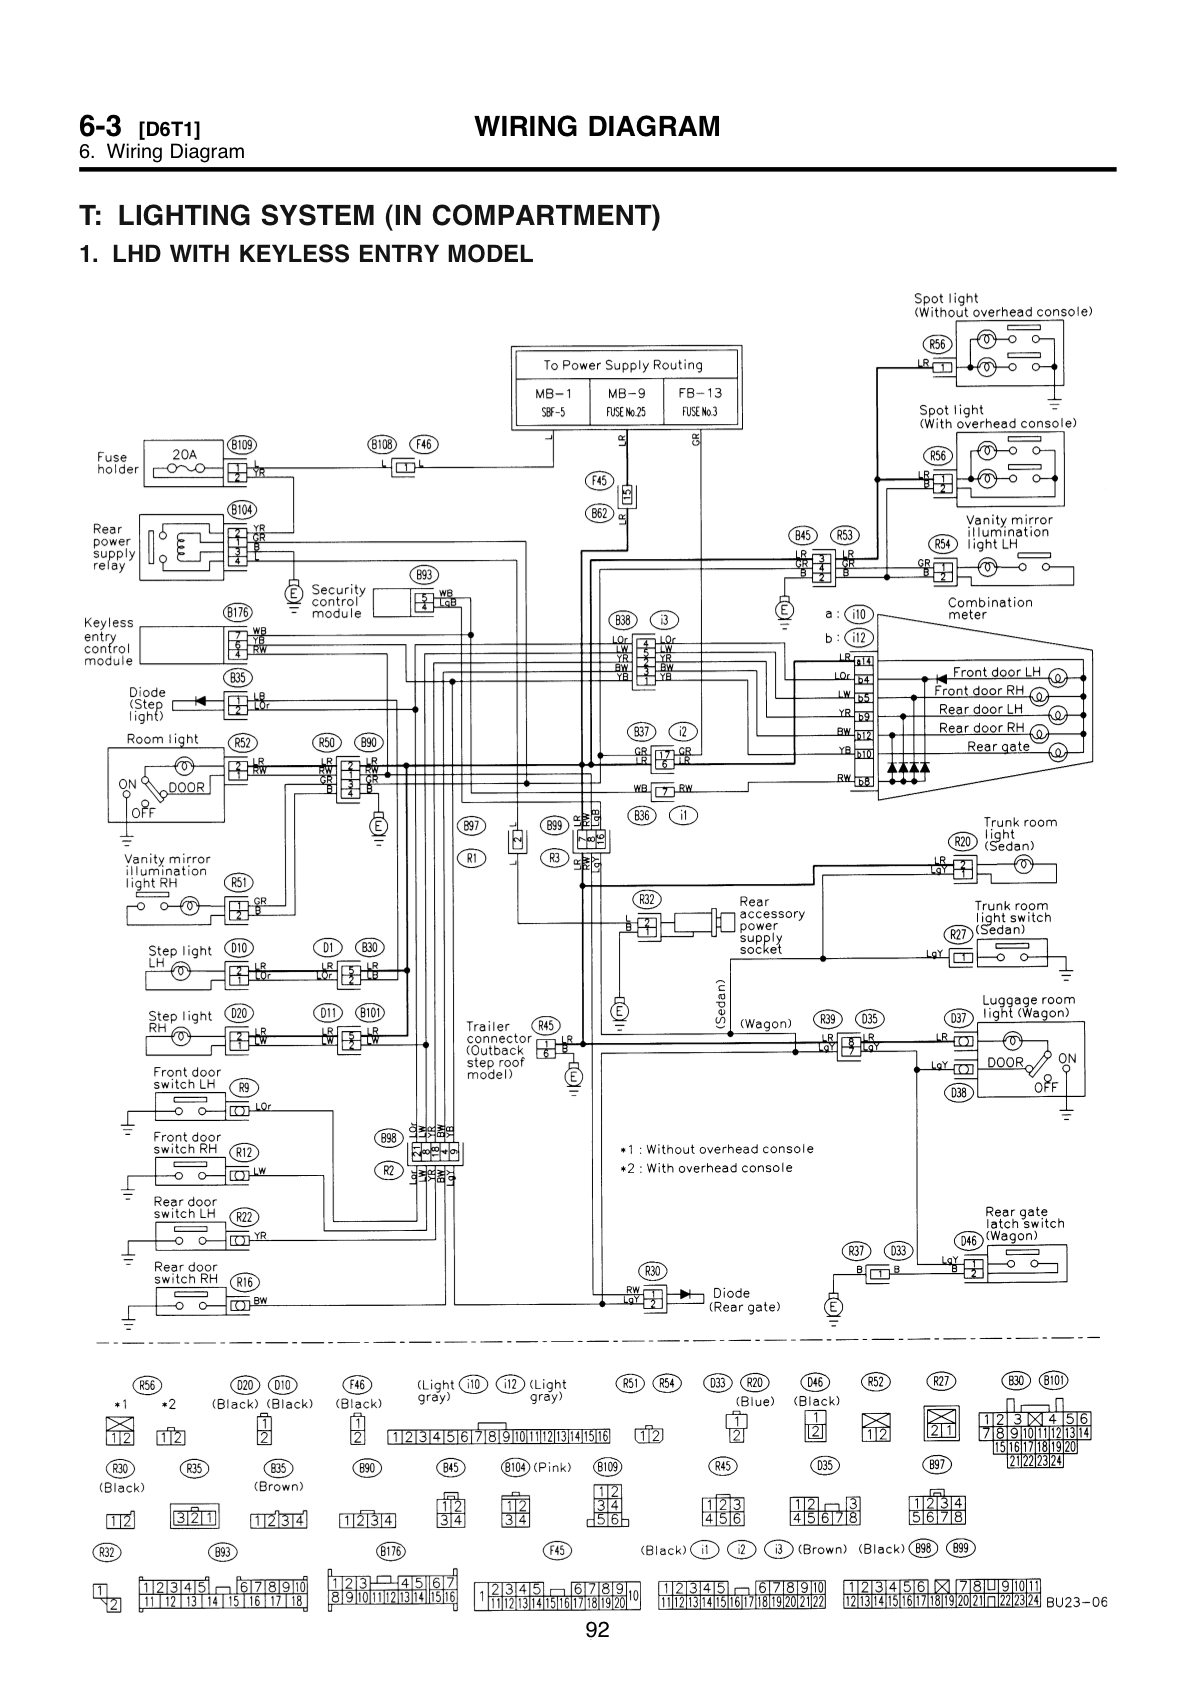 wiring_diagram1?resize\=840%2C1187 diagrams 554363 kramer single humbucker wiring diagram kramer kramer pacer wiring diagram at alyssarenee.co